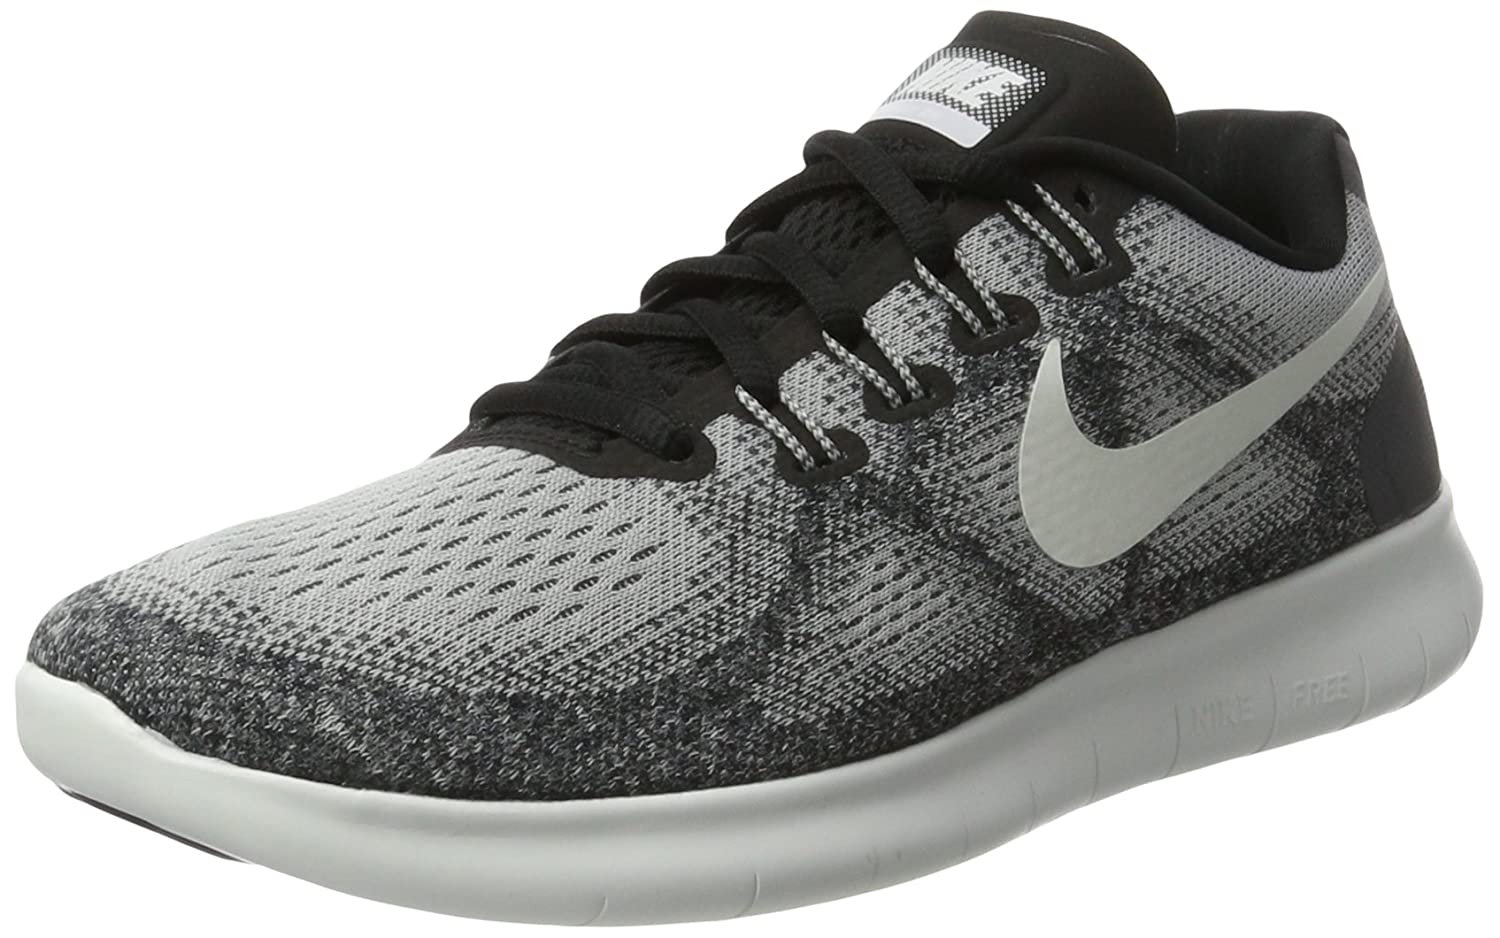 NIKE Women's Free RN 2017 Running Shoe B01K0NR3ZG 12 B(M) US|Wolf Grey/Off White-pure Platinum-black